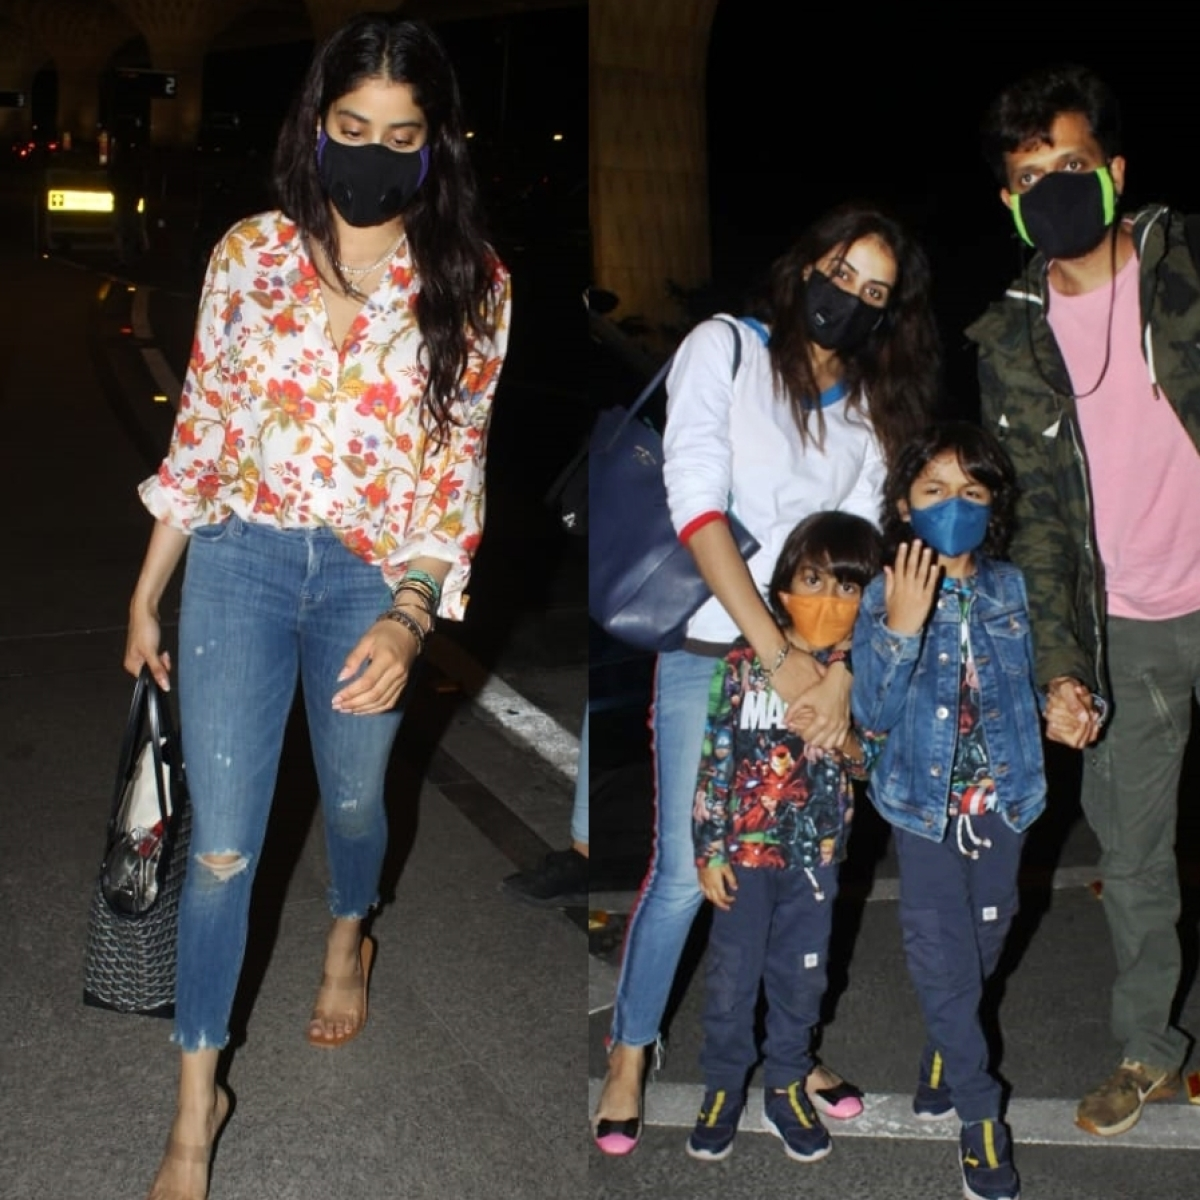 From Janhvi Kapoor to Riteish-Genelia Deshmukh, B-town celebs leave Mumbai amid lockdown